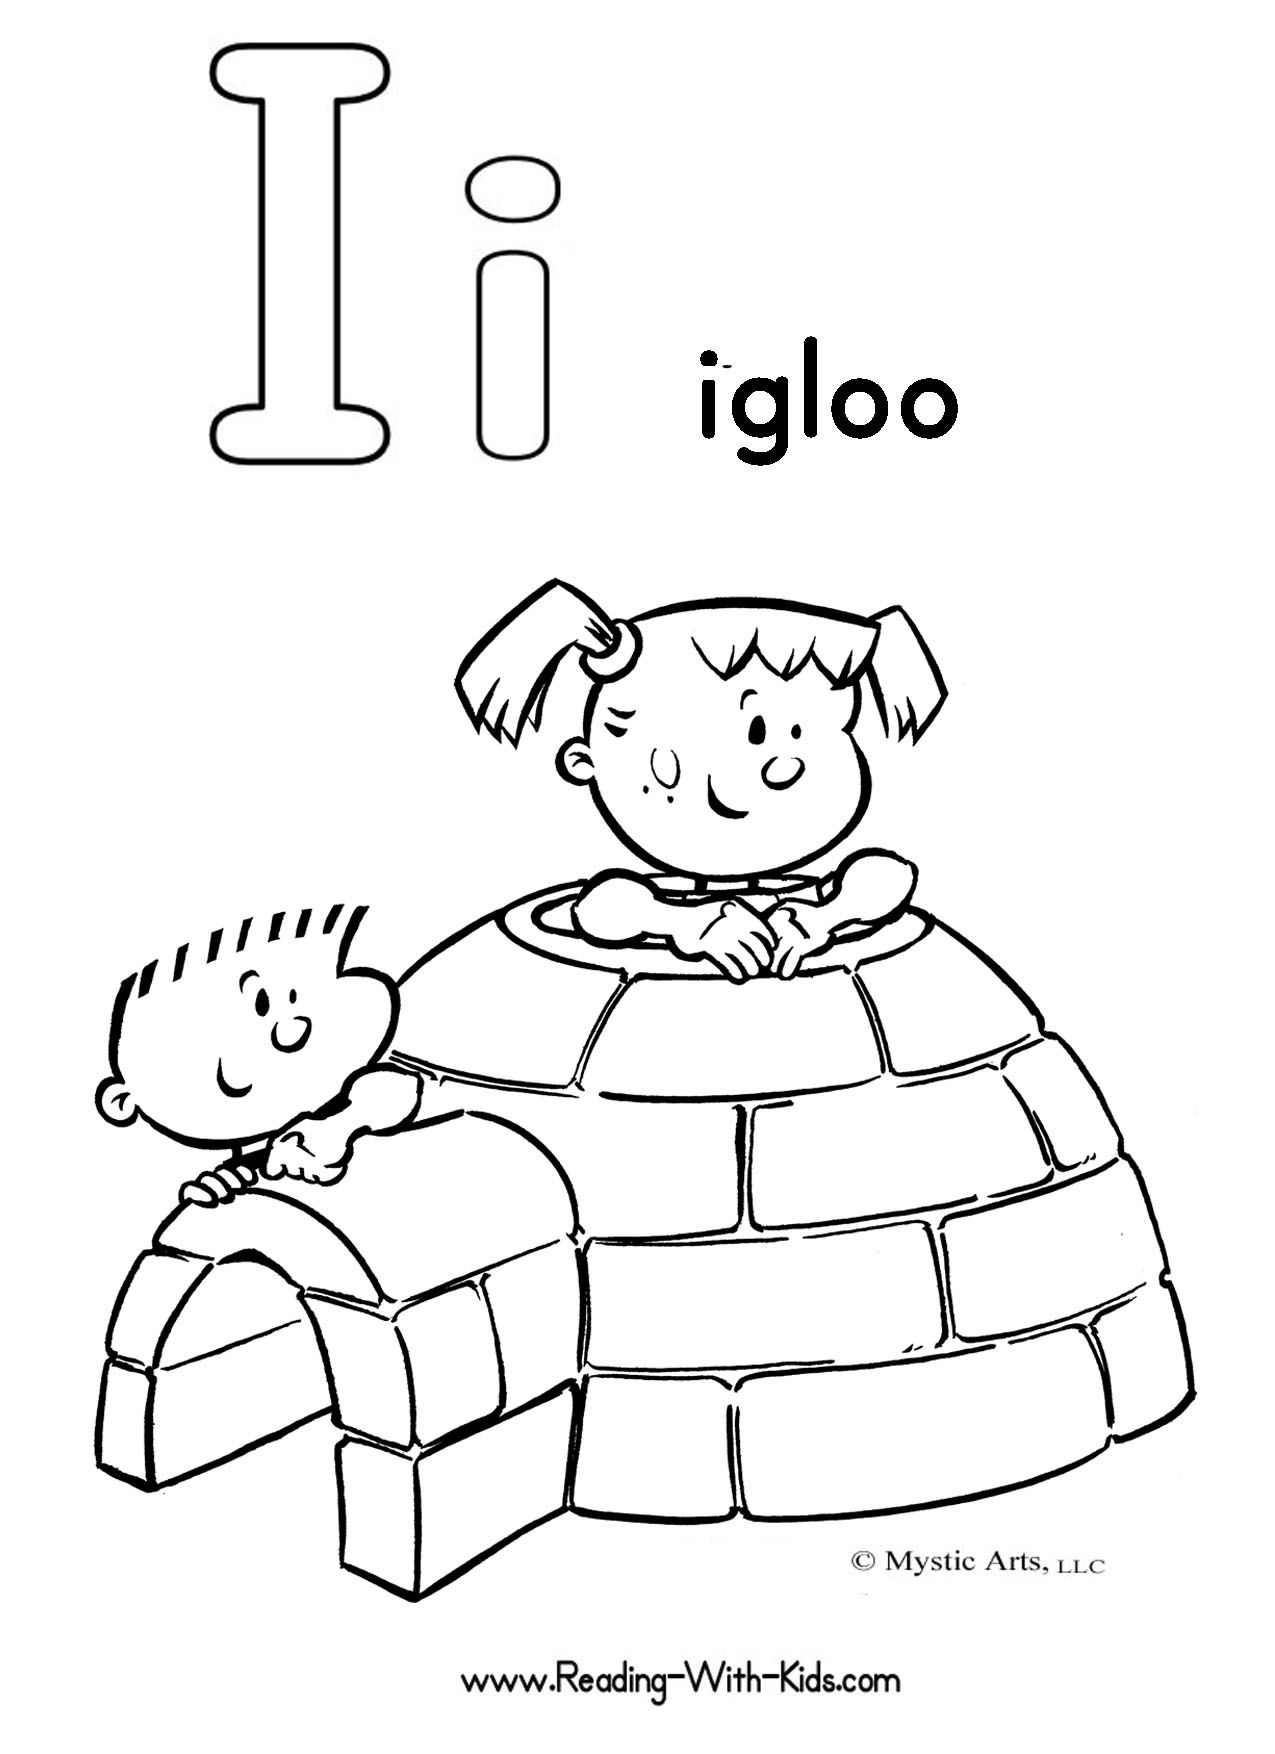 igloo coloring pic | Alphabet Coloring Pages | Alphabet | Pinterest ...